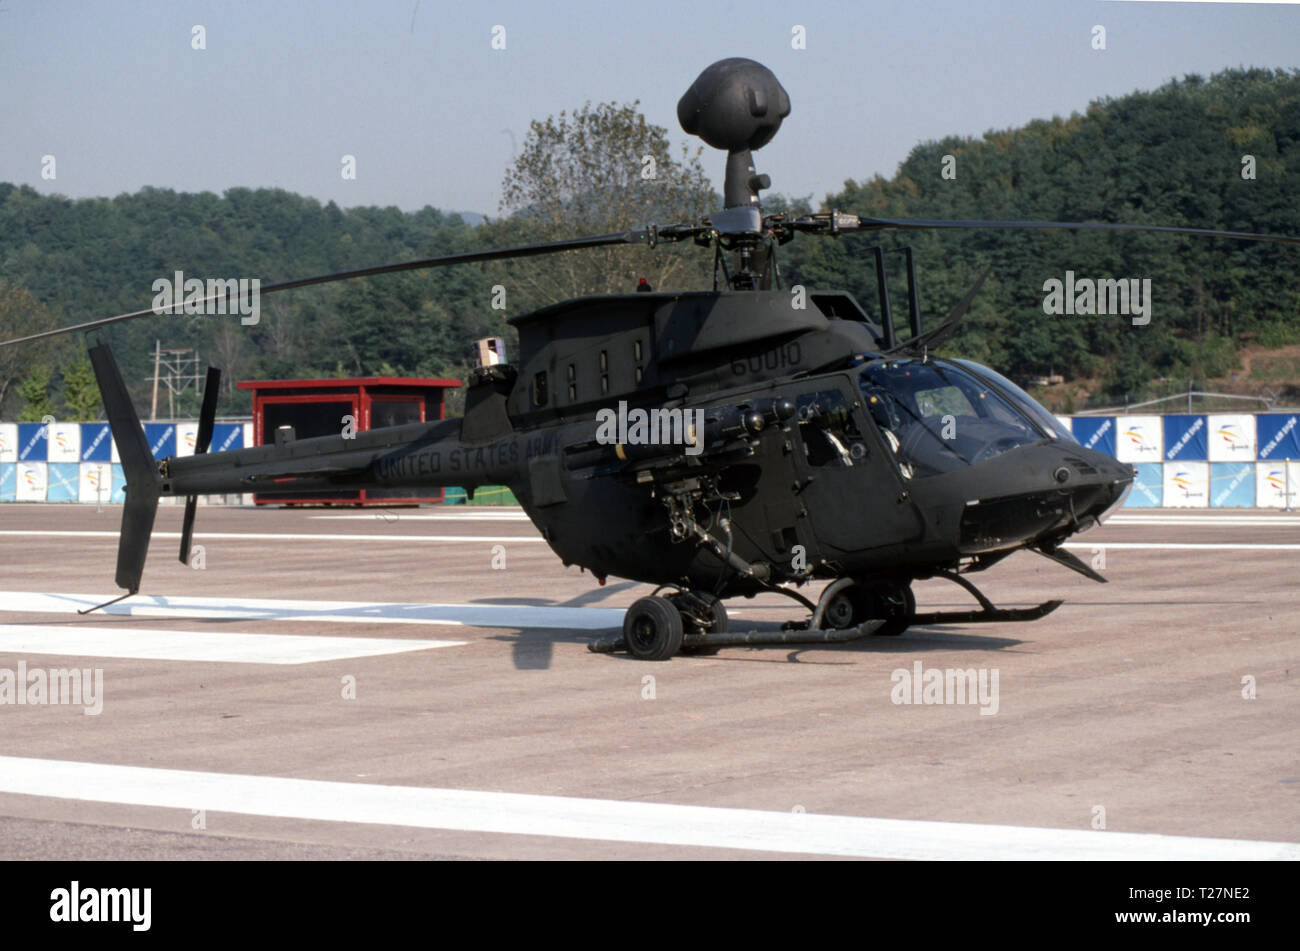 US ARMY / United States Army Bell OH-58D Kiowa - Stock Image